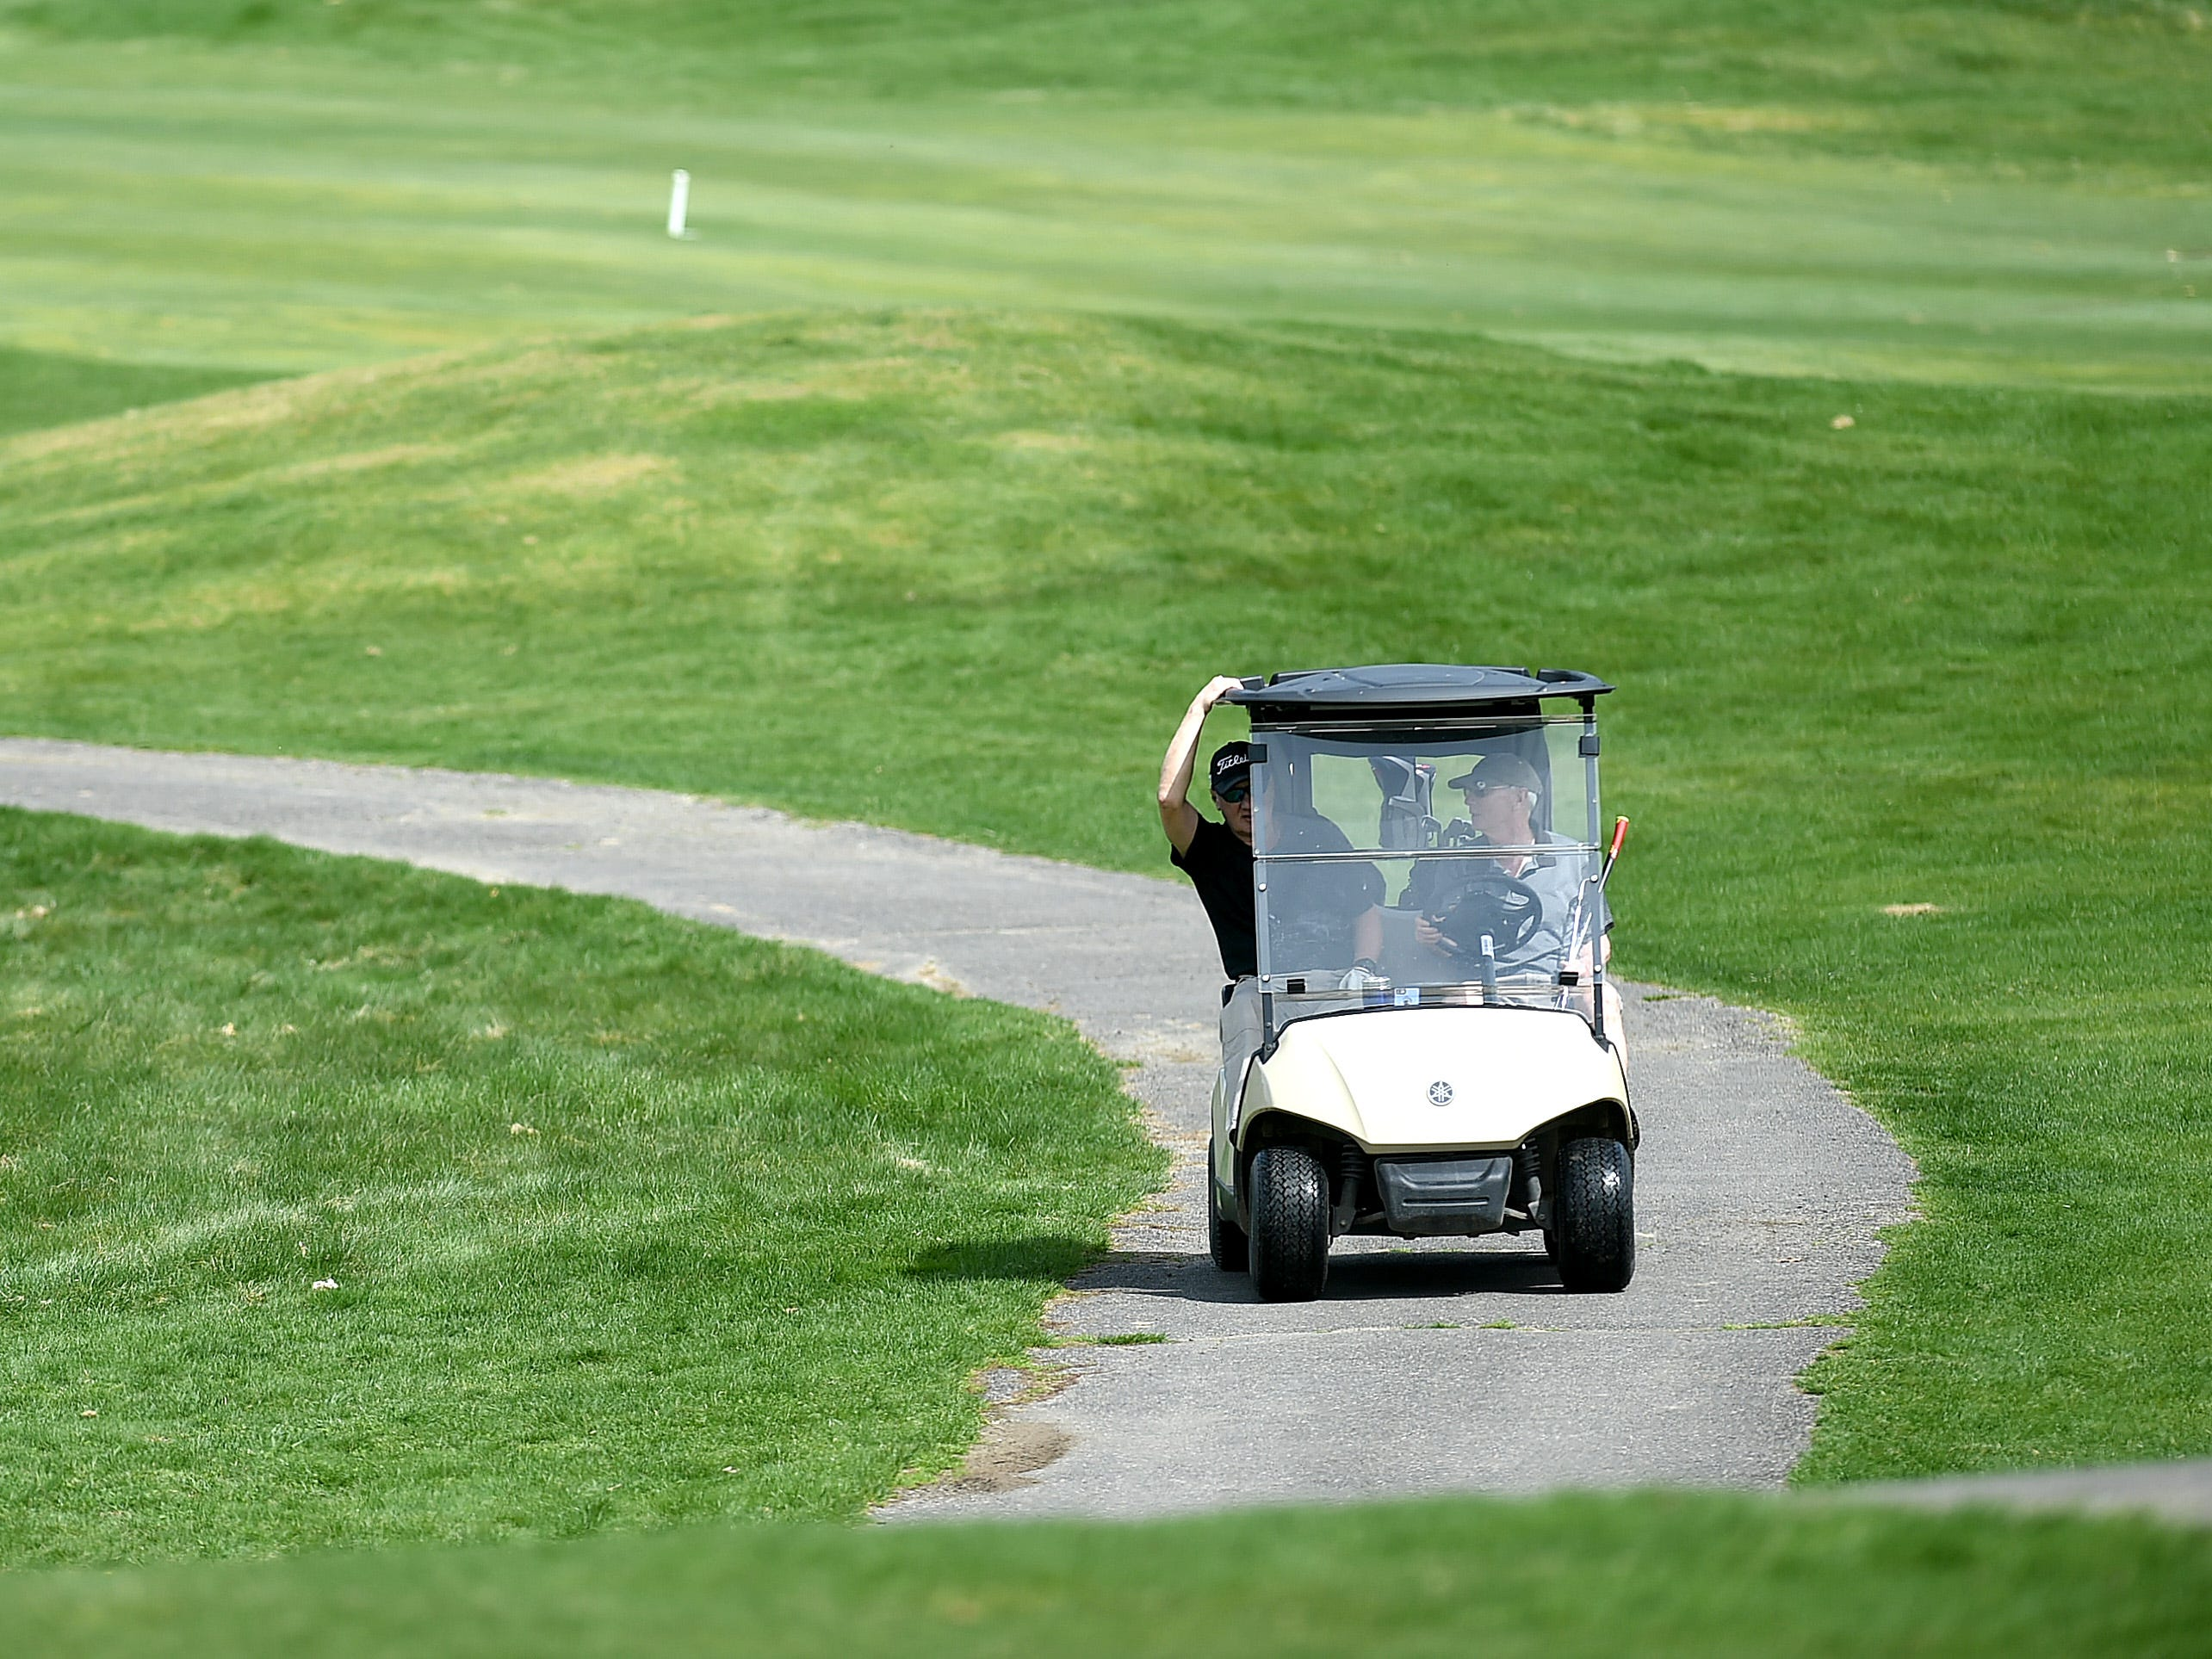 Golfers enjoy the spring weather at The Links at Hiawatha Landing in Apalachin on Tuesday, April 23, 2019.